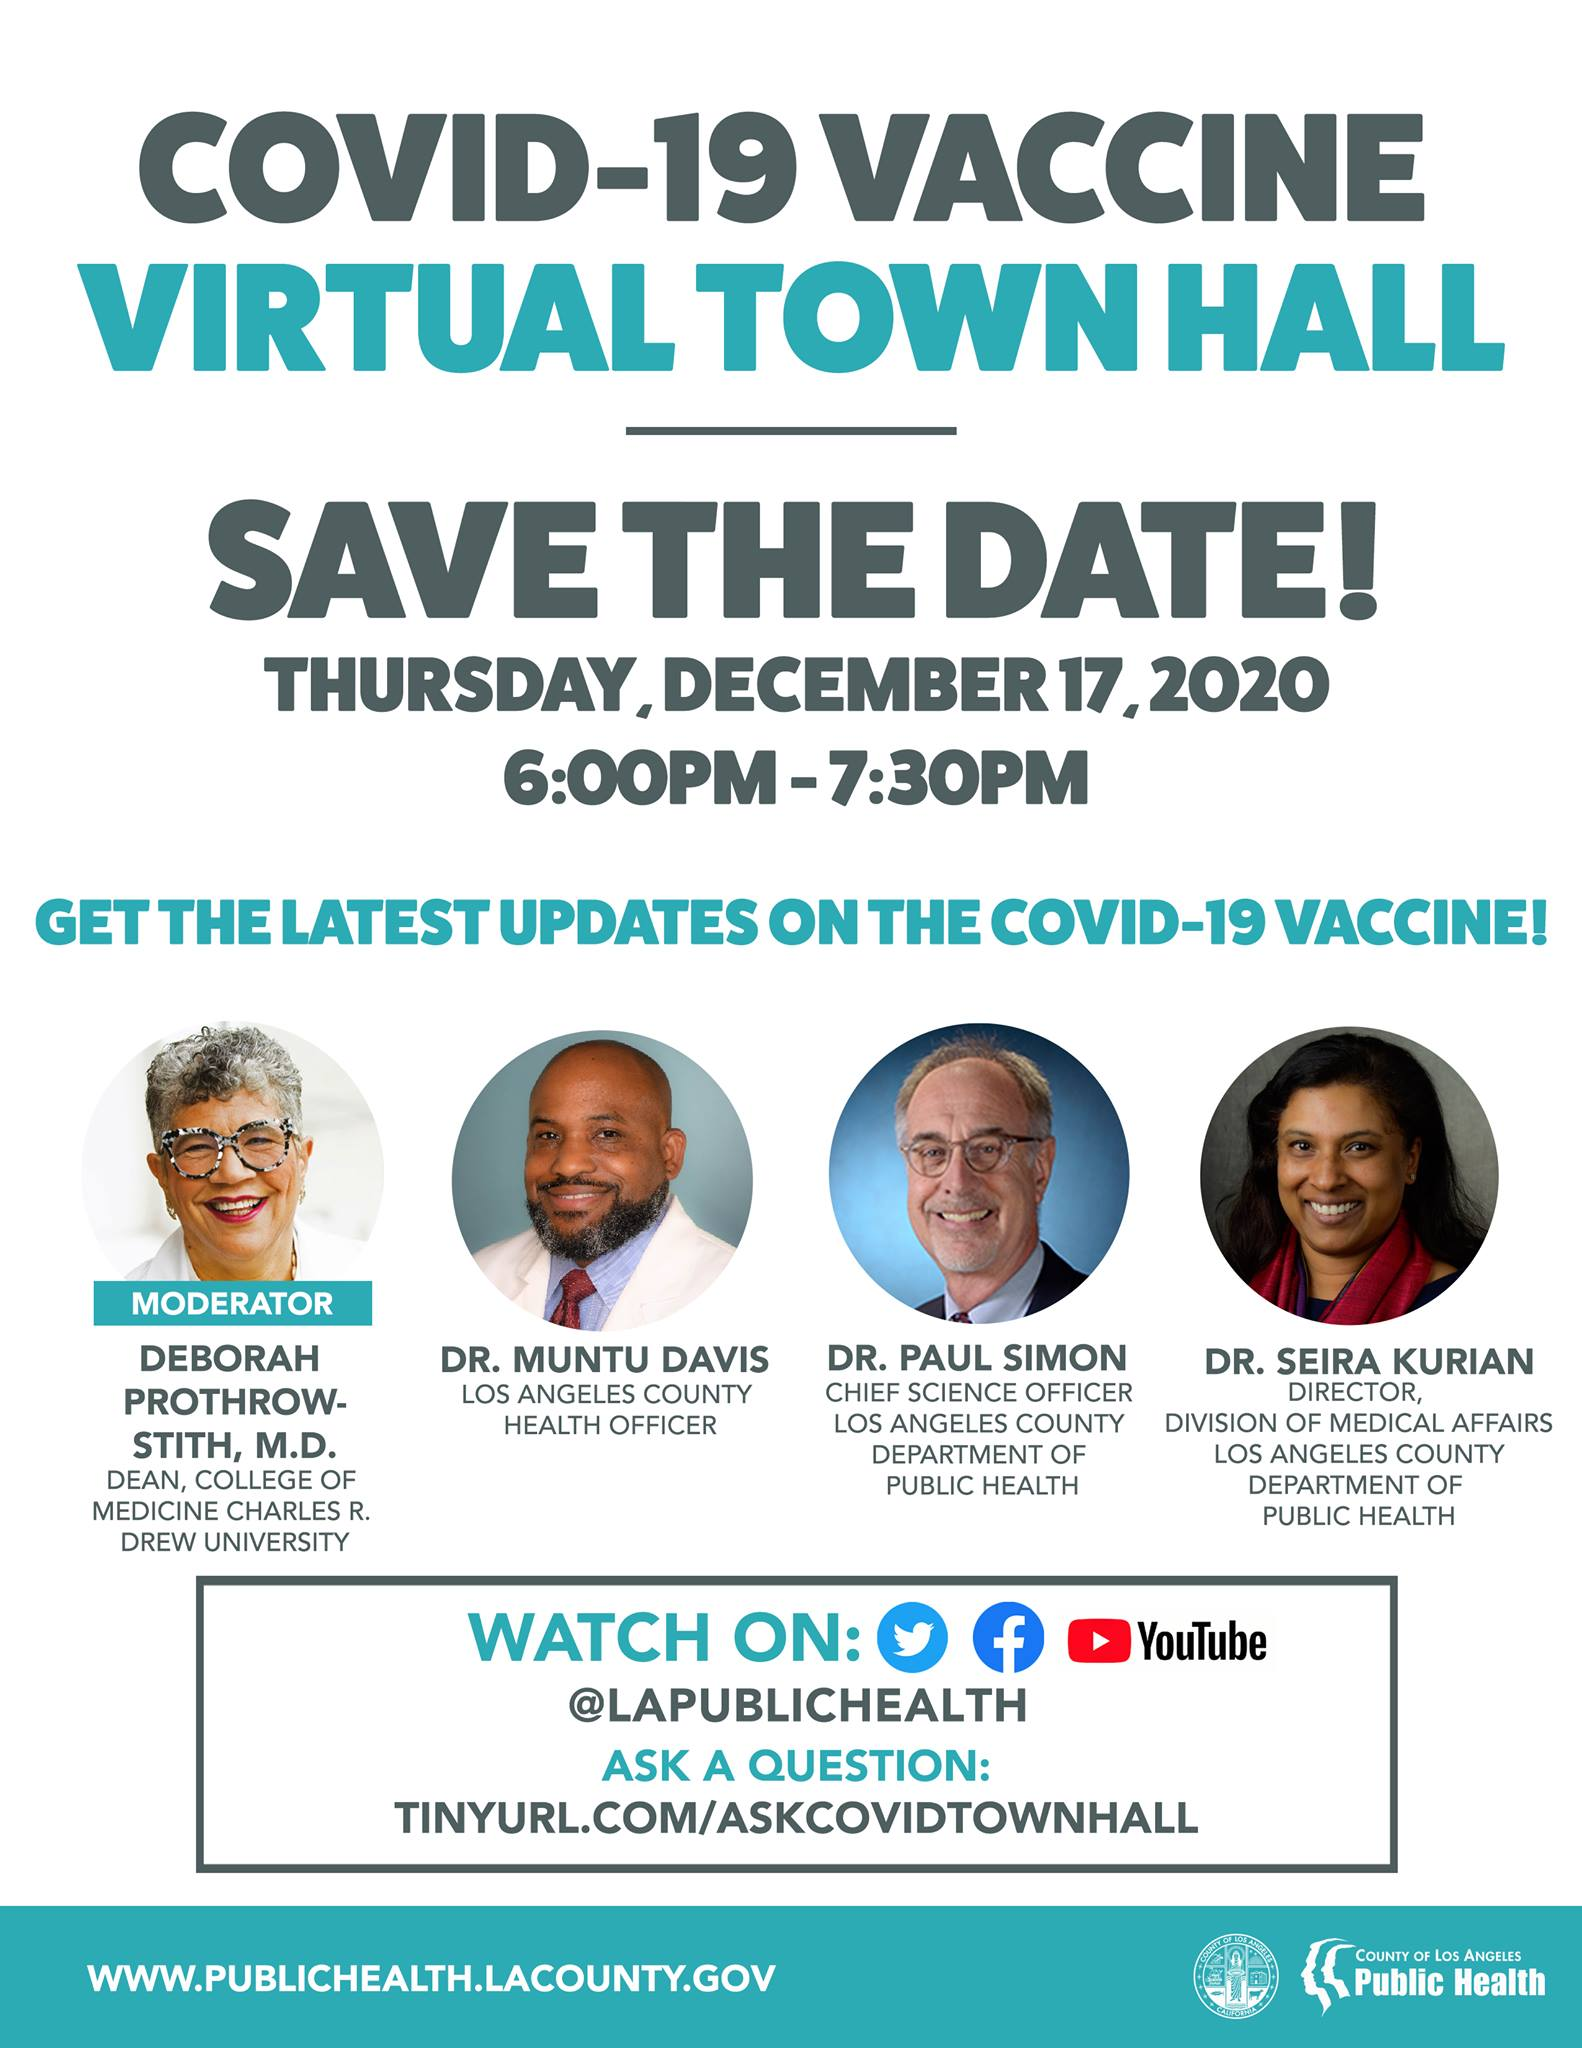 COVID VACCINE TOWN HALL TONIGHT at 6:00 PM